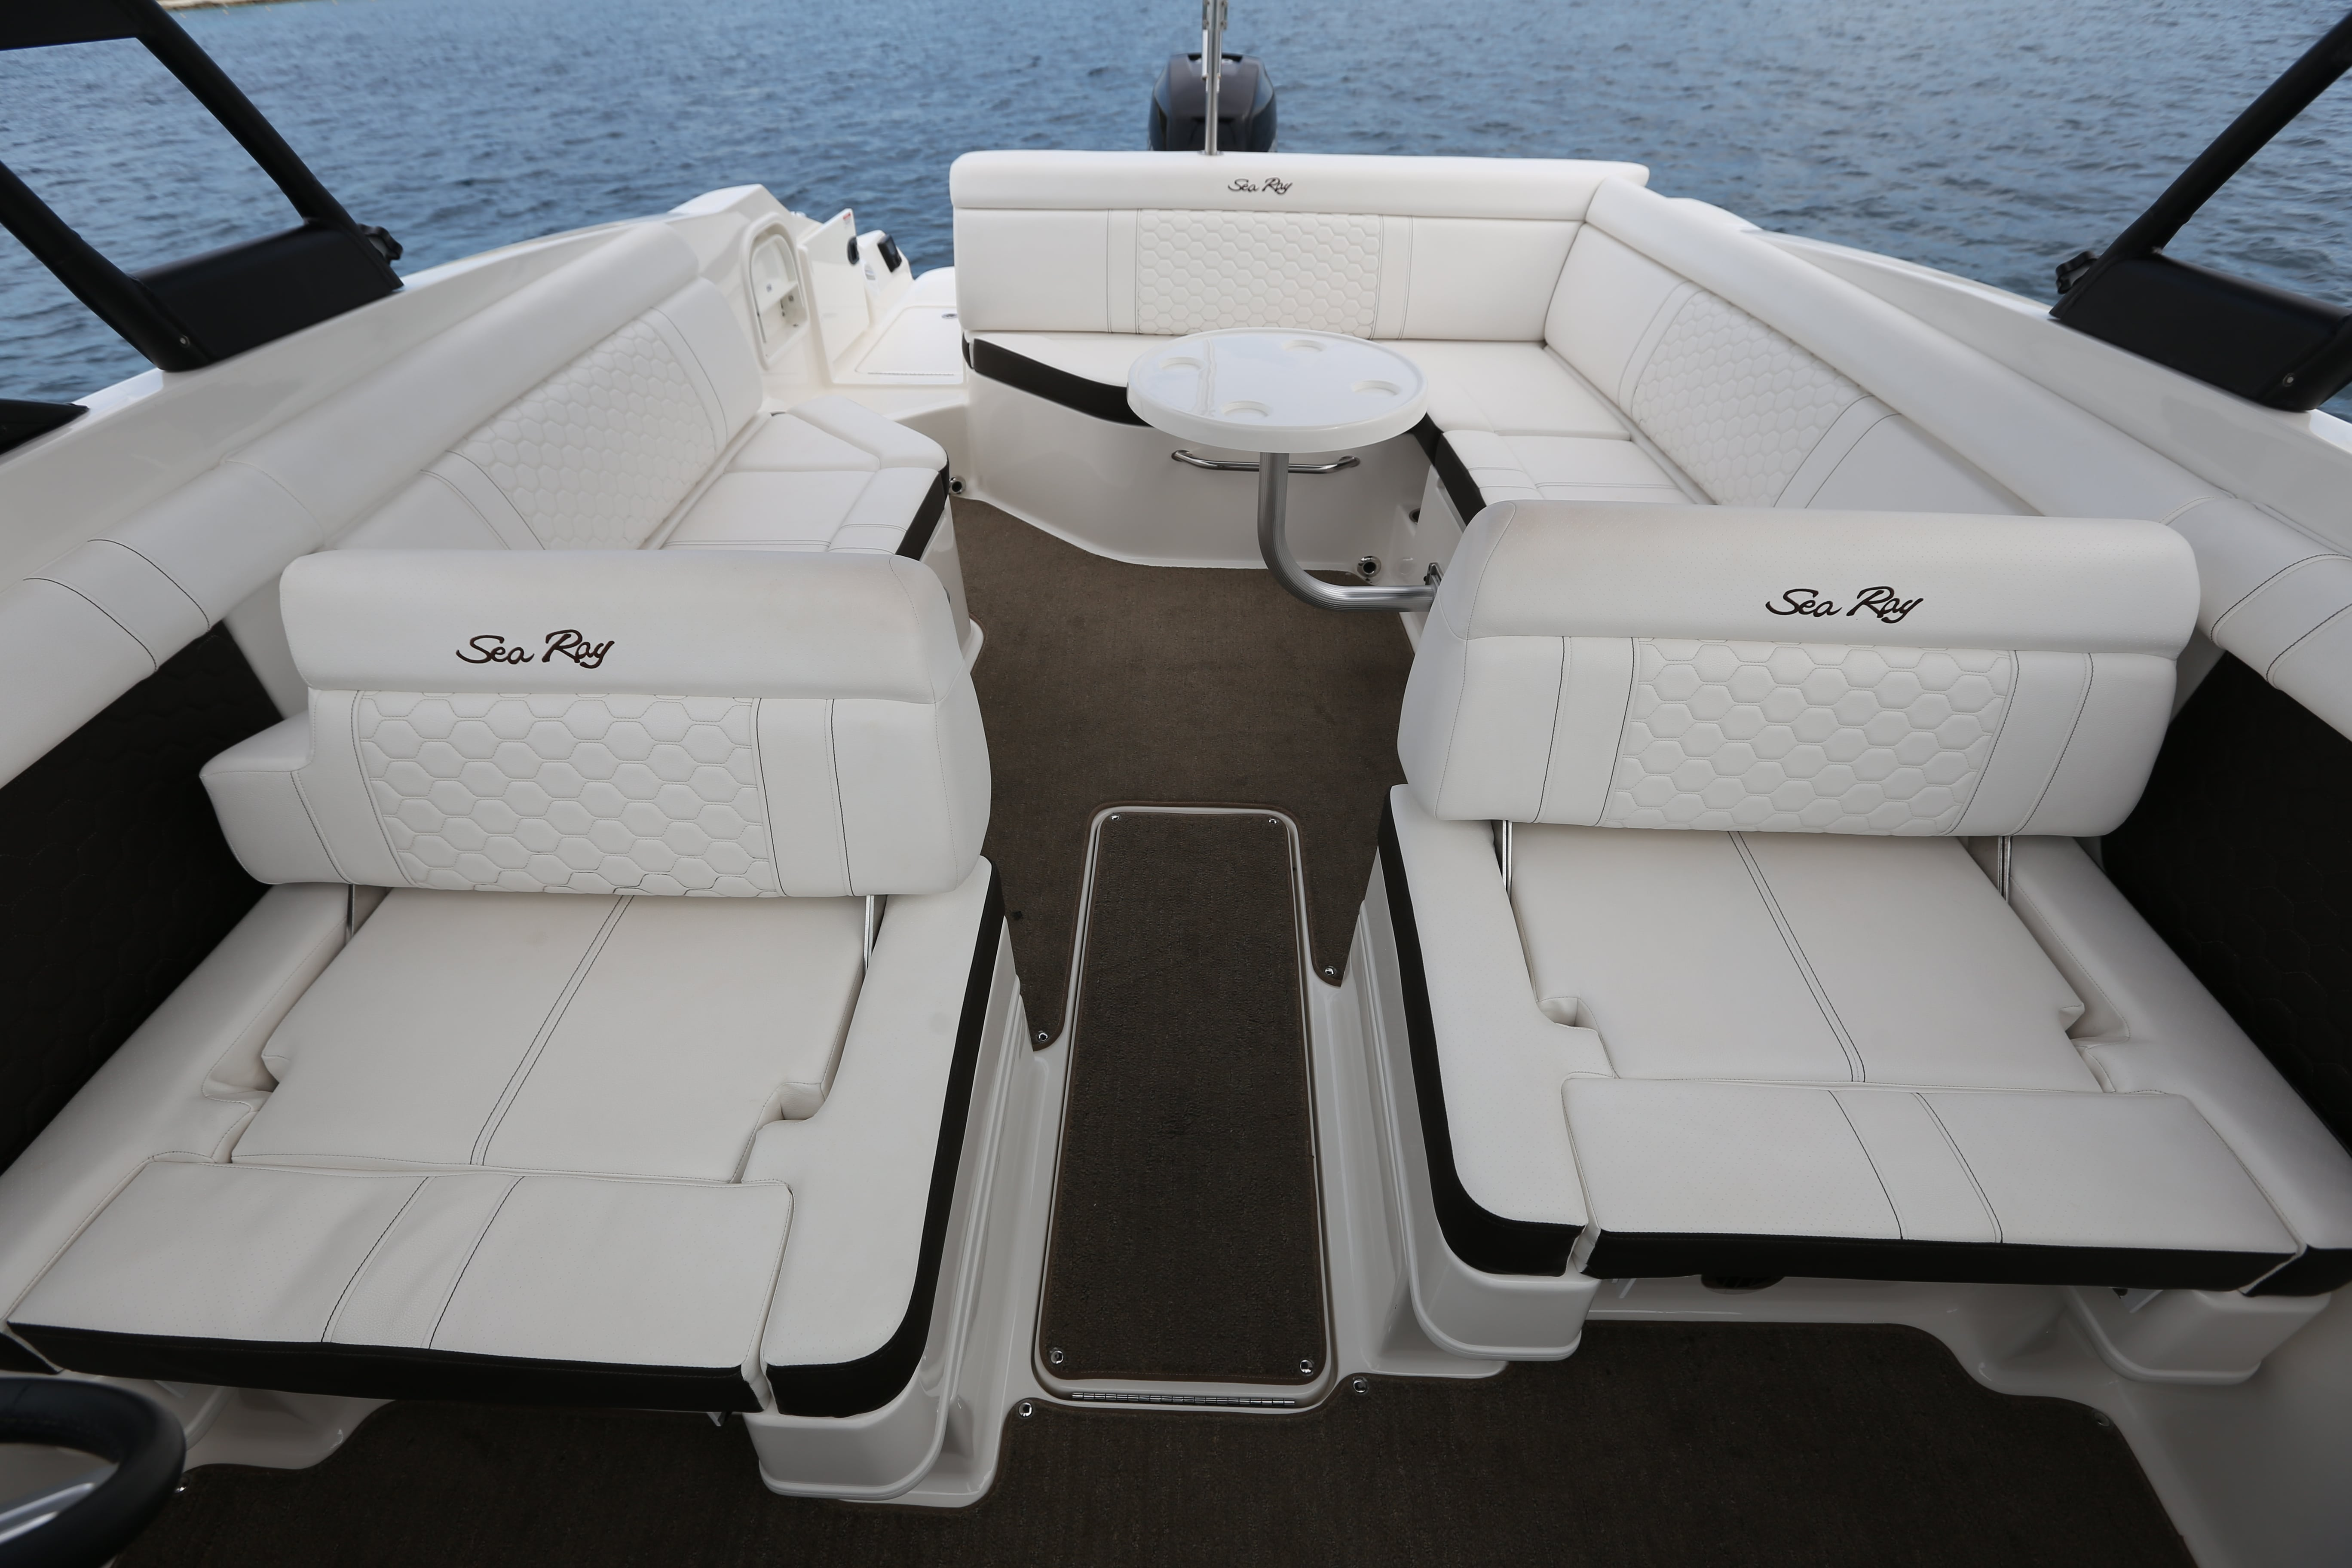 Deluxe Searay 28-8